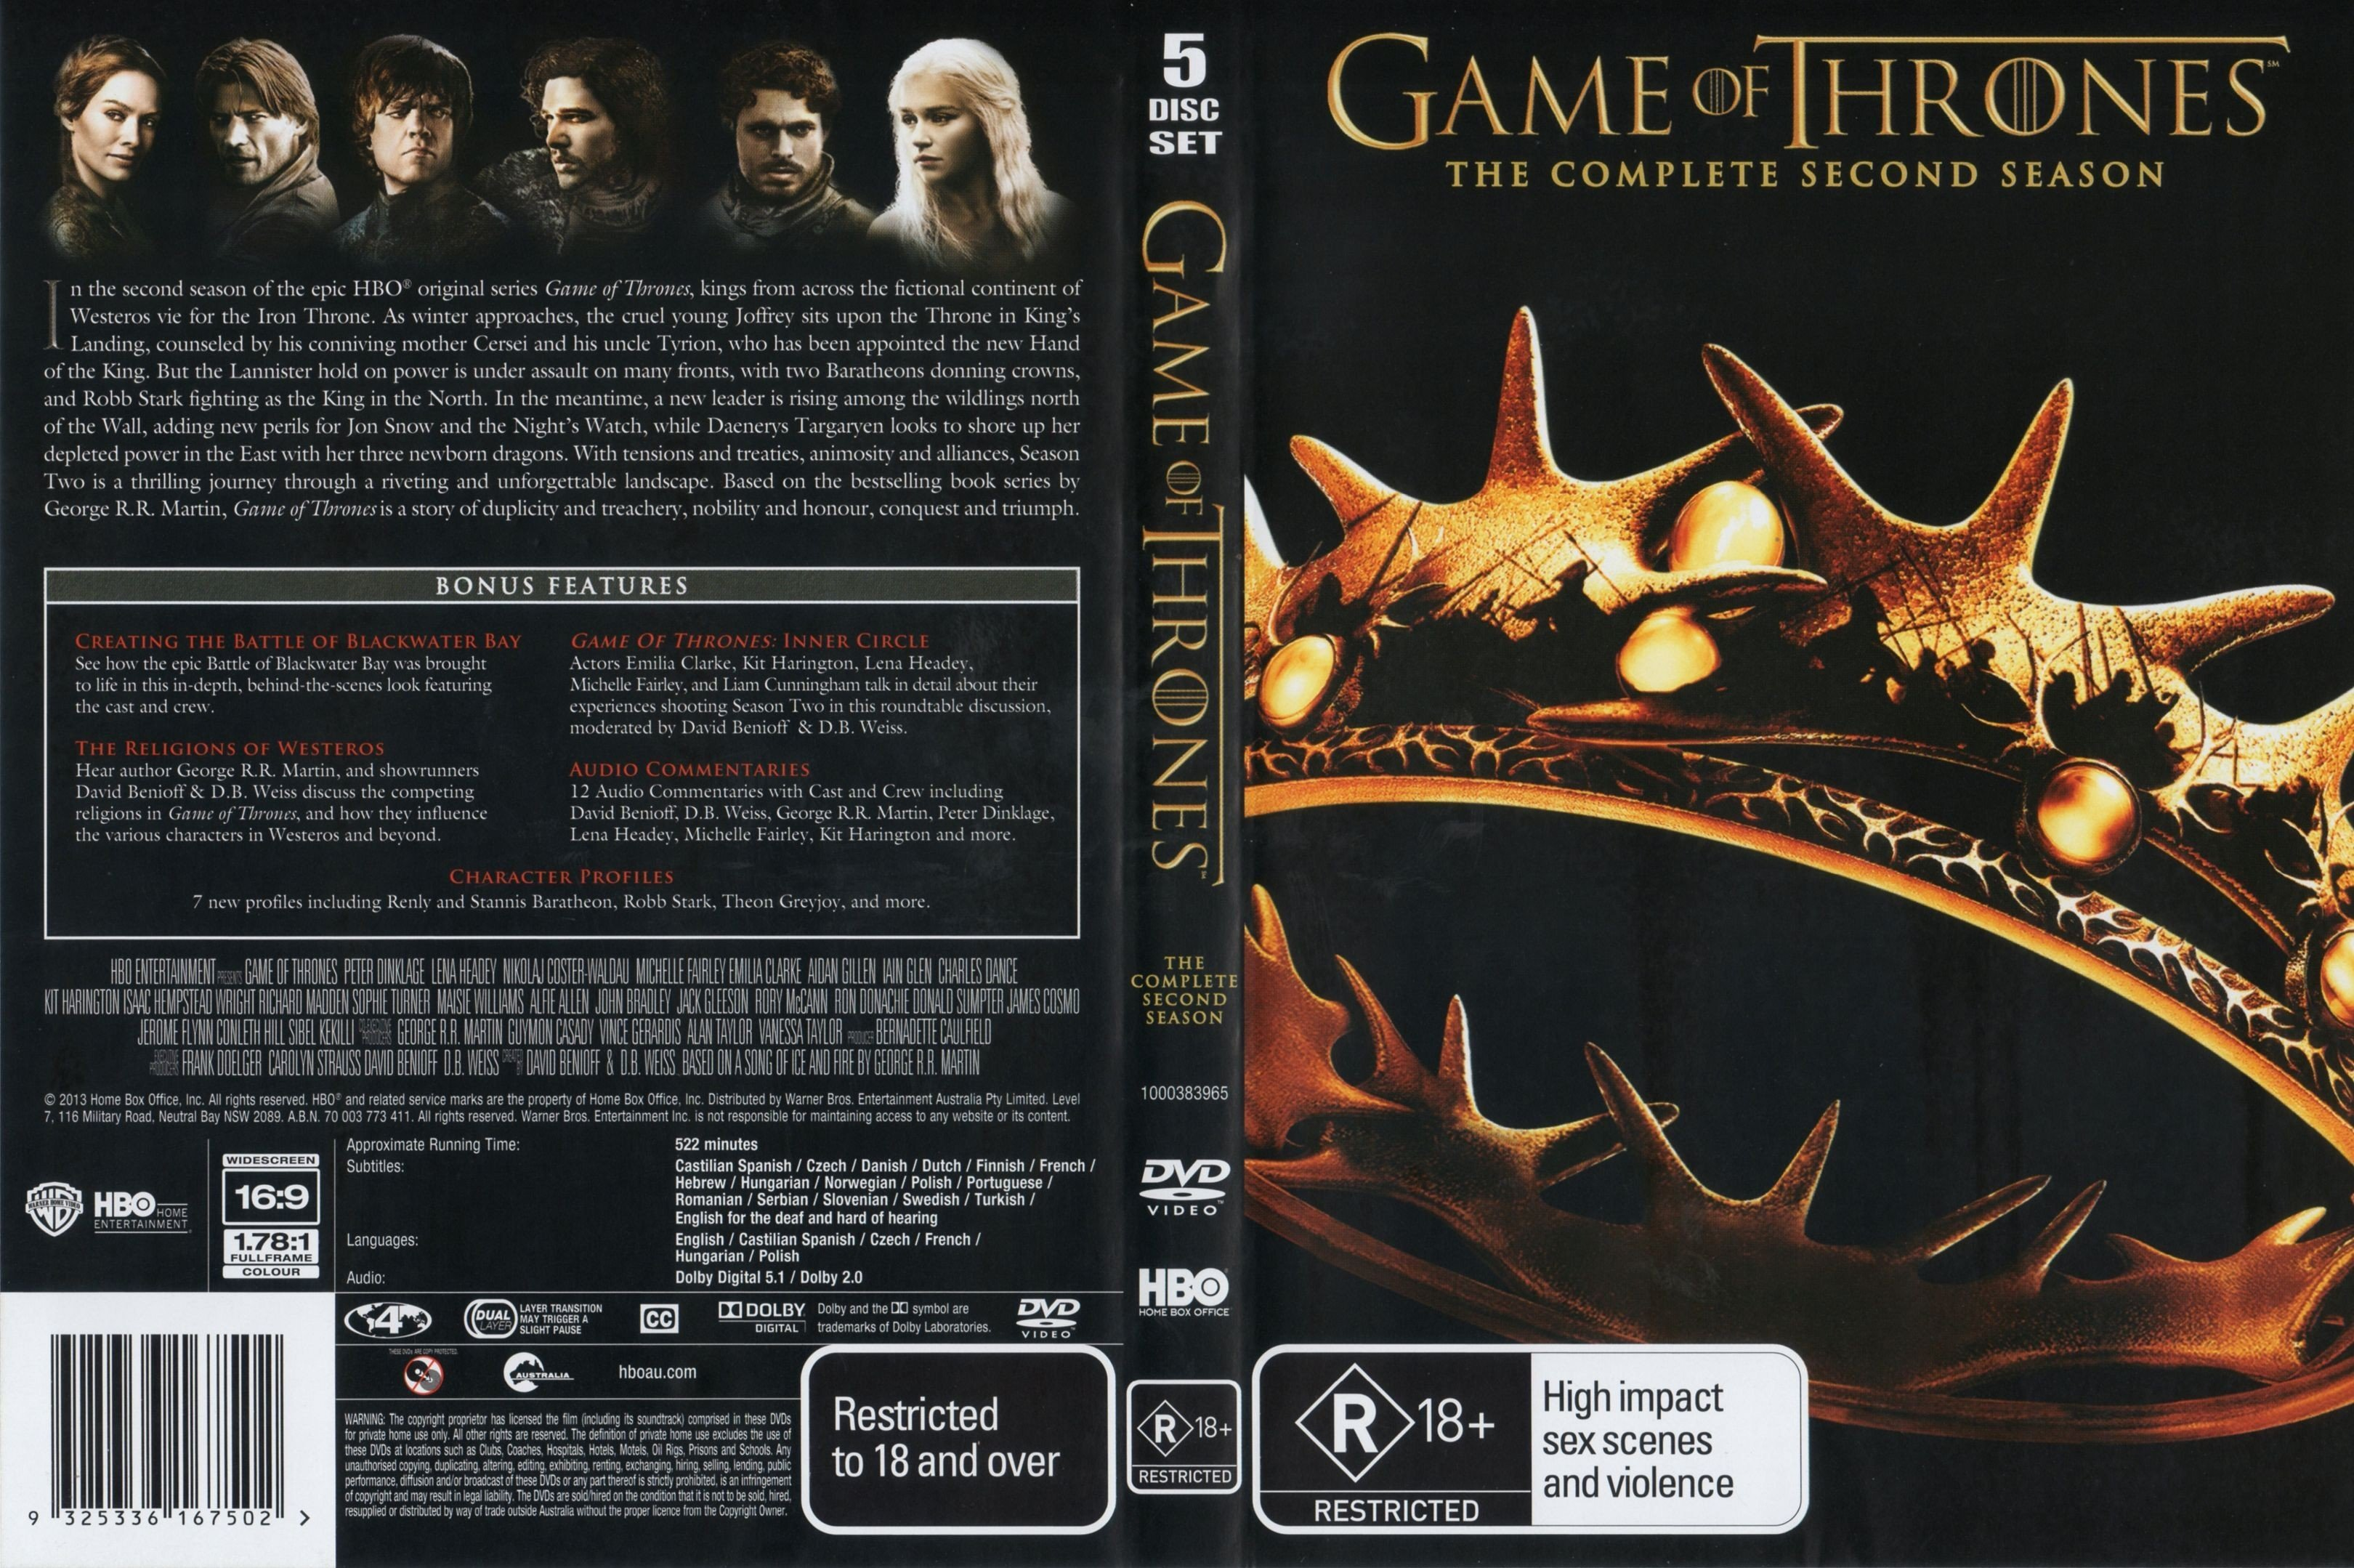 Game Of Thrones: Season 2 R4 | Dvd Covers and Labels